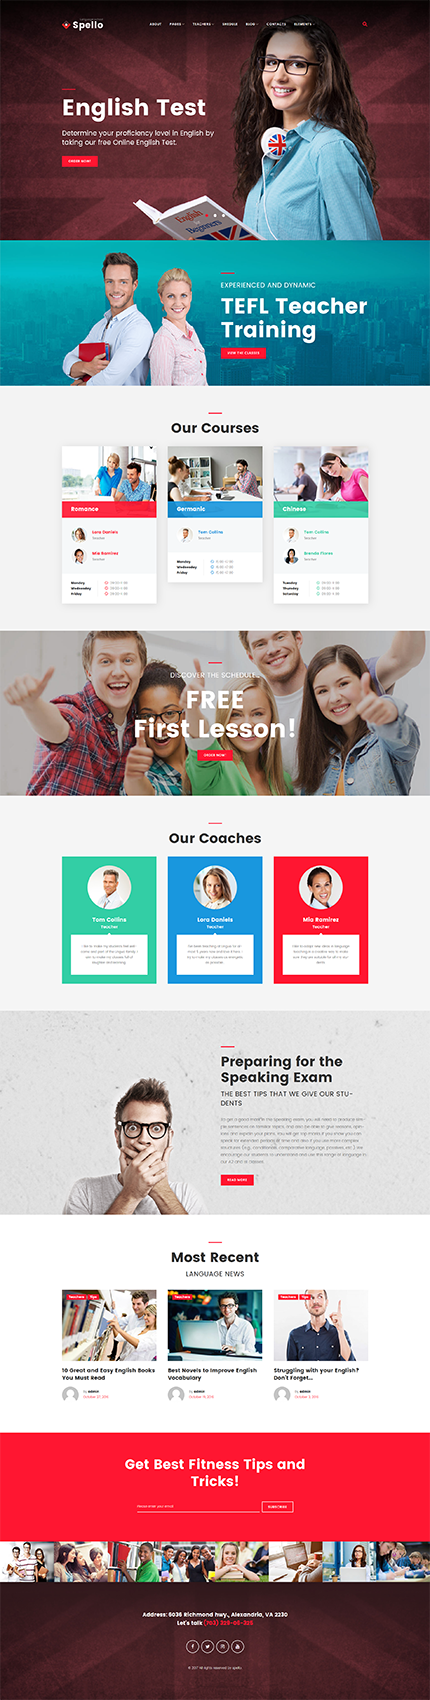 Education Most Popular website inspirations at your coffee break? Browse for more WordPress #templates! // Regular price: $75 // Sources available:.PHP, This theme is widgetized #Education #Most Popular #WordPress